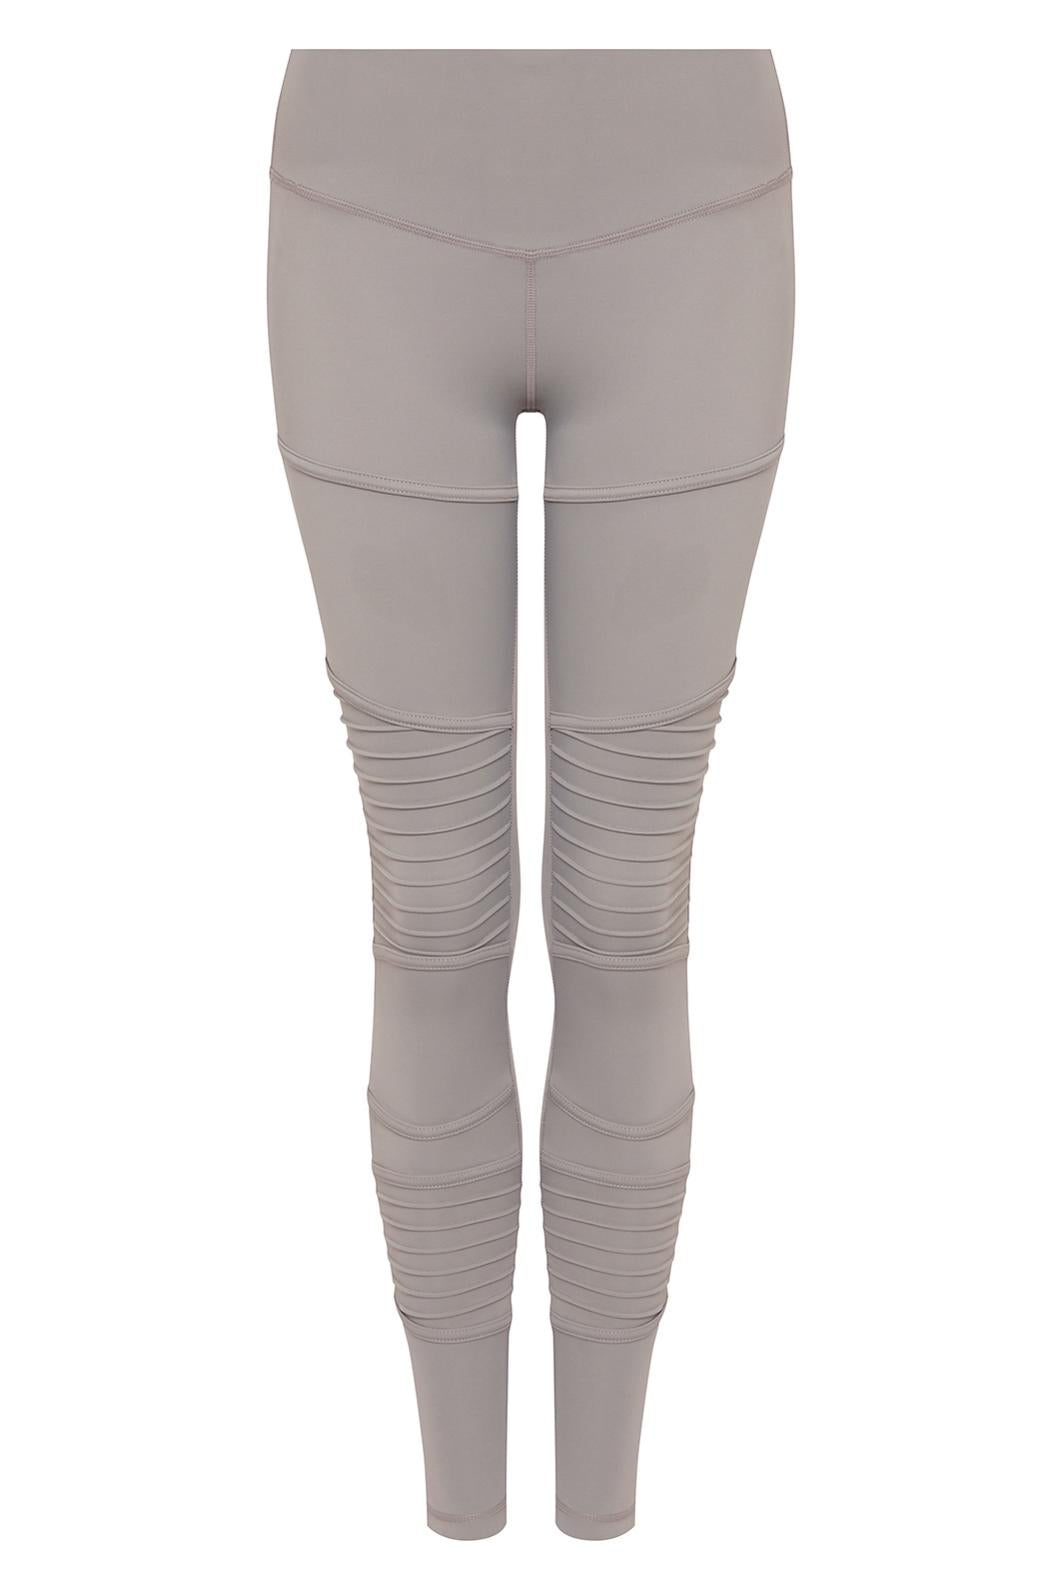 Little Love Moto Legging - Dusty Teal